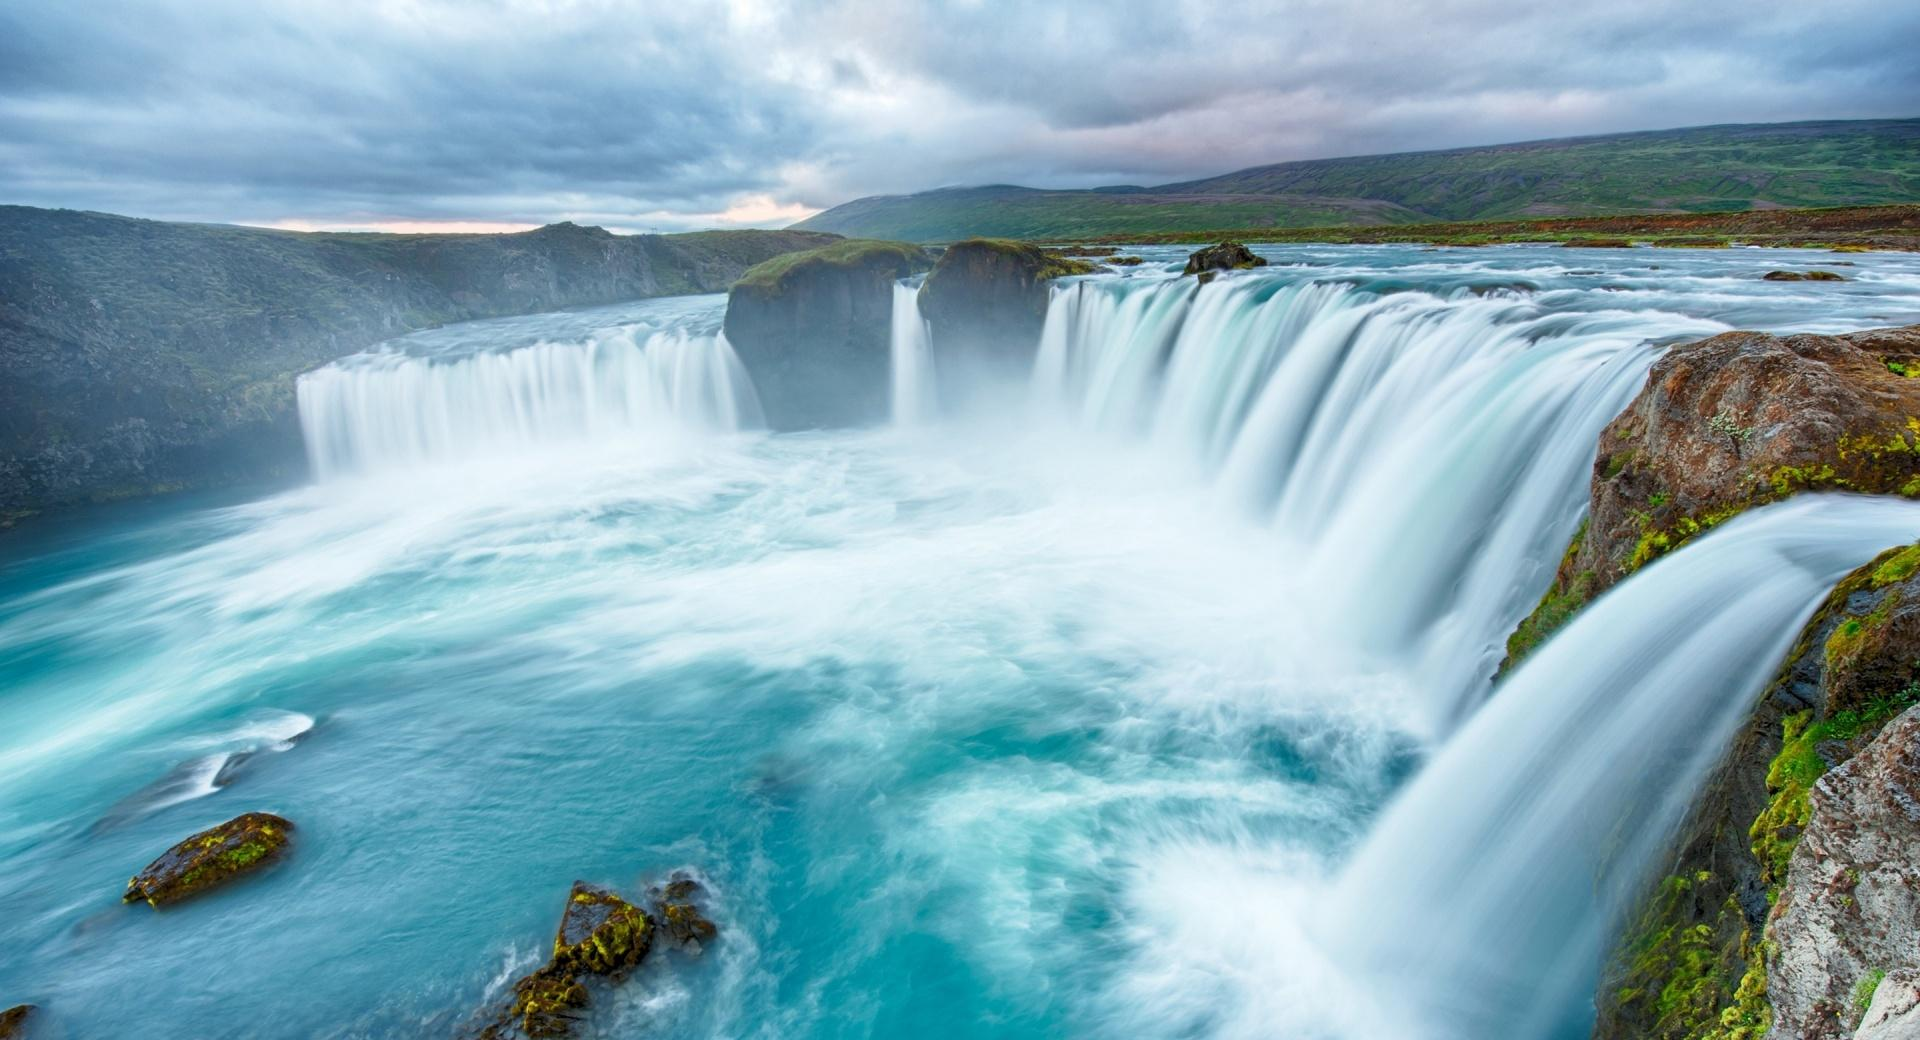 Big Waterfalls Clouds wallpapers HD quality